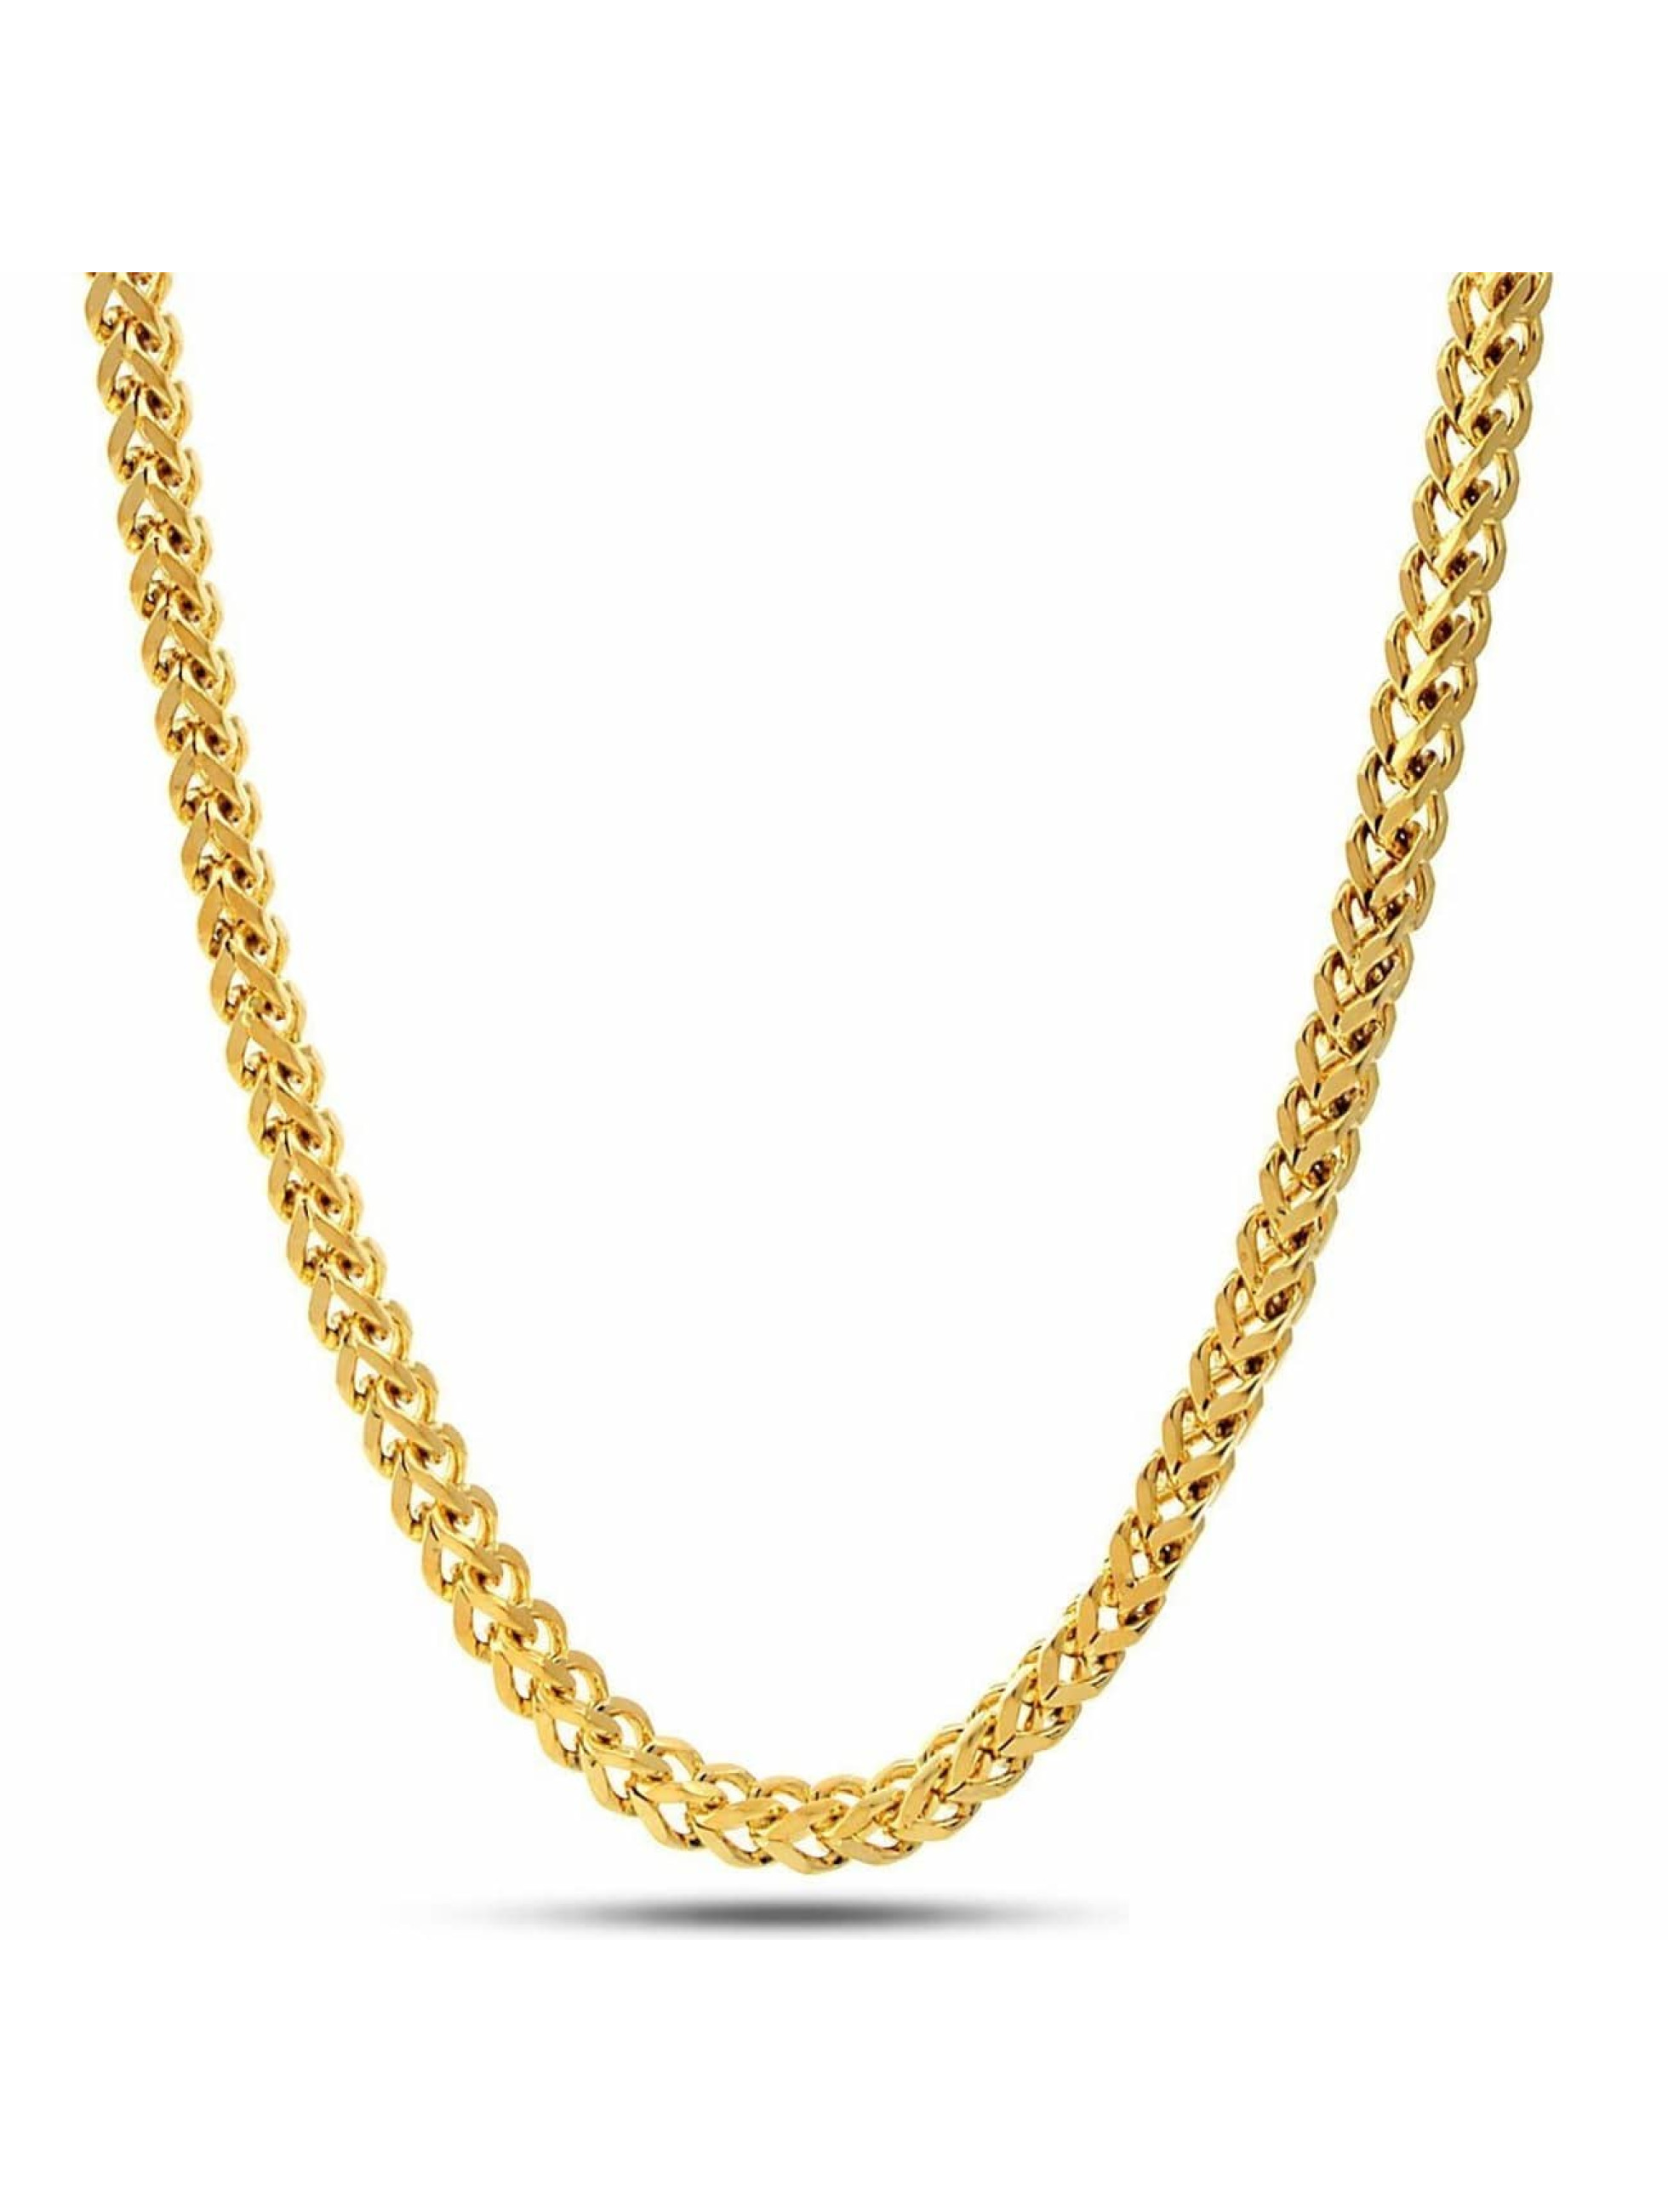 KING ICE ketting Gold_Plated 5mm Franco goud